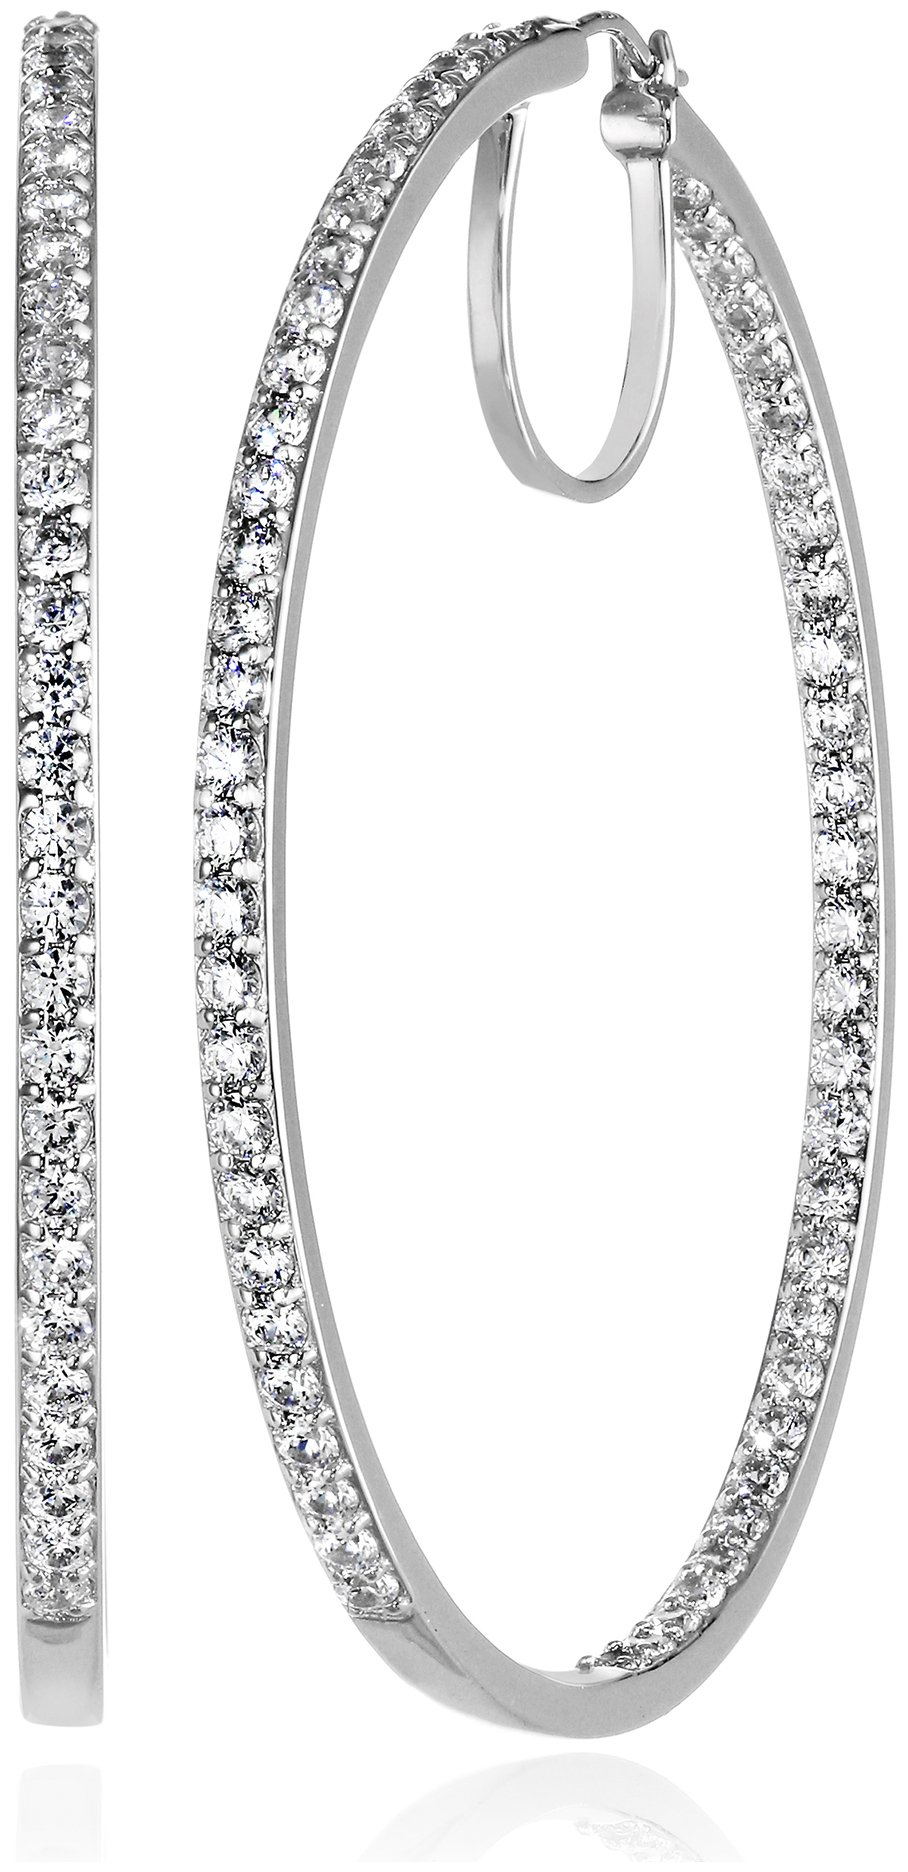 Platinum-Plated Sterling Silver Swarovski Zirconia Round Hoop Earrings (2'' Diameter) (7 cttw) by Amazon Collection